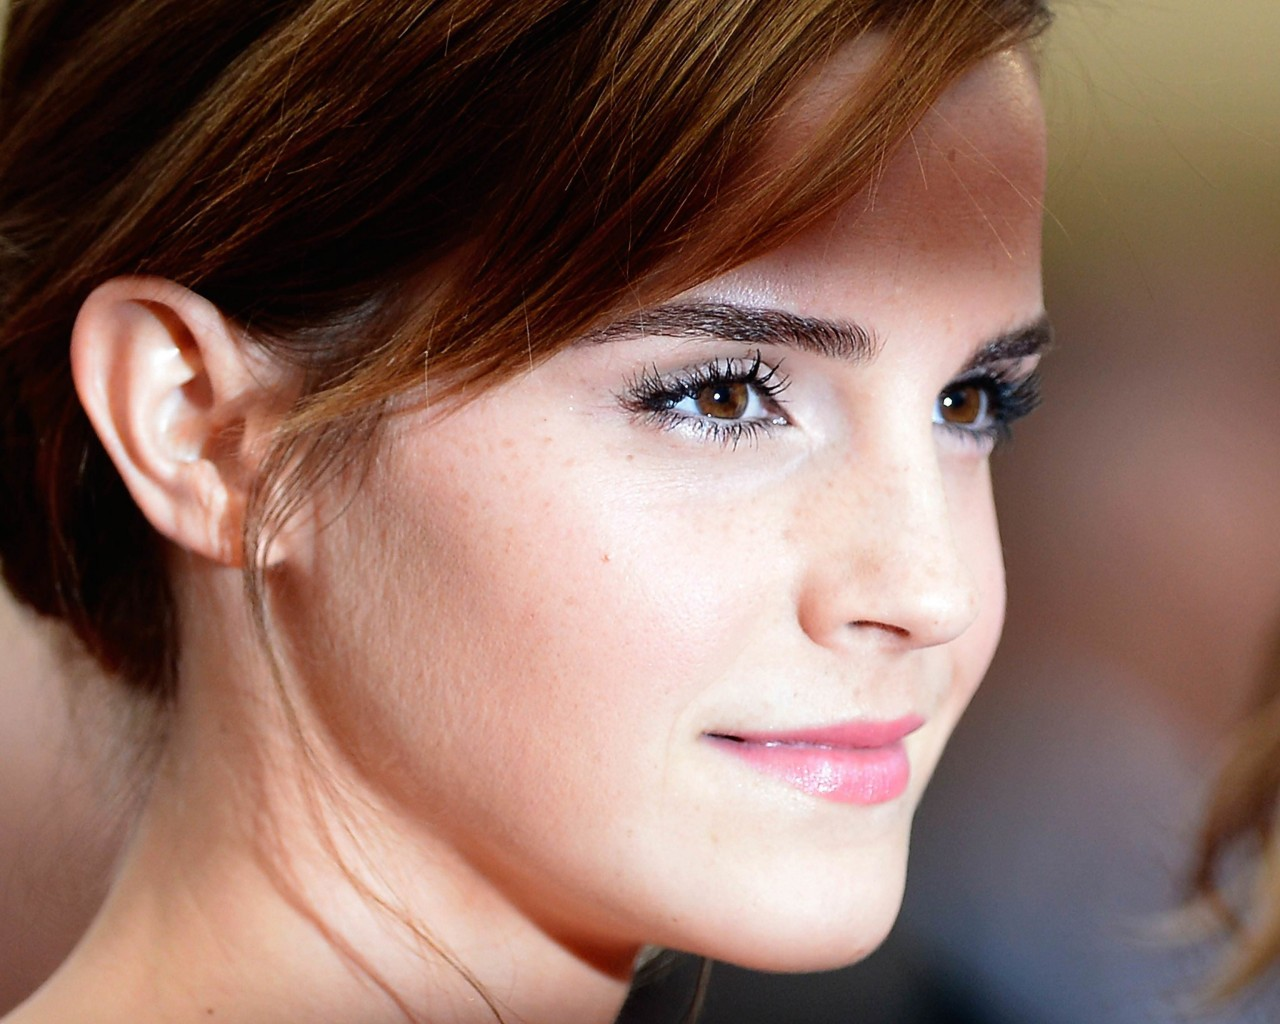 Emma Watson Wallpaper for Desktop 1280x1024